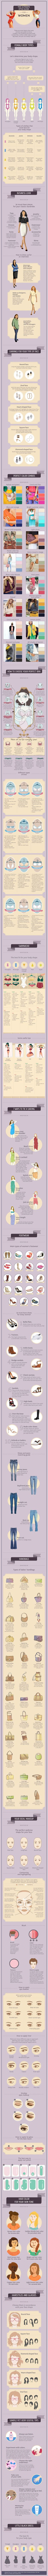 Looking good takes a lot of effort. And this ultimate style guide will help women attain beauty.